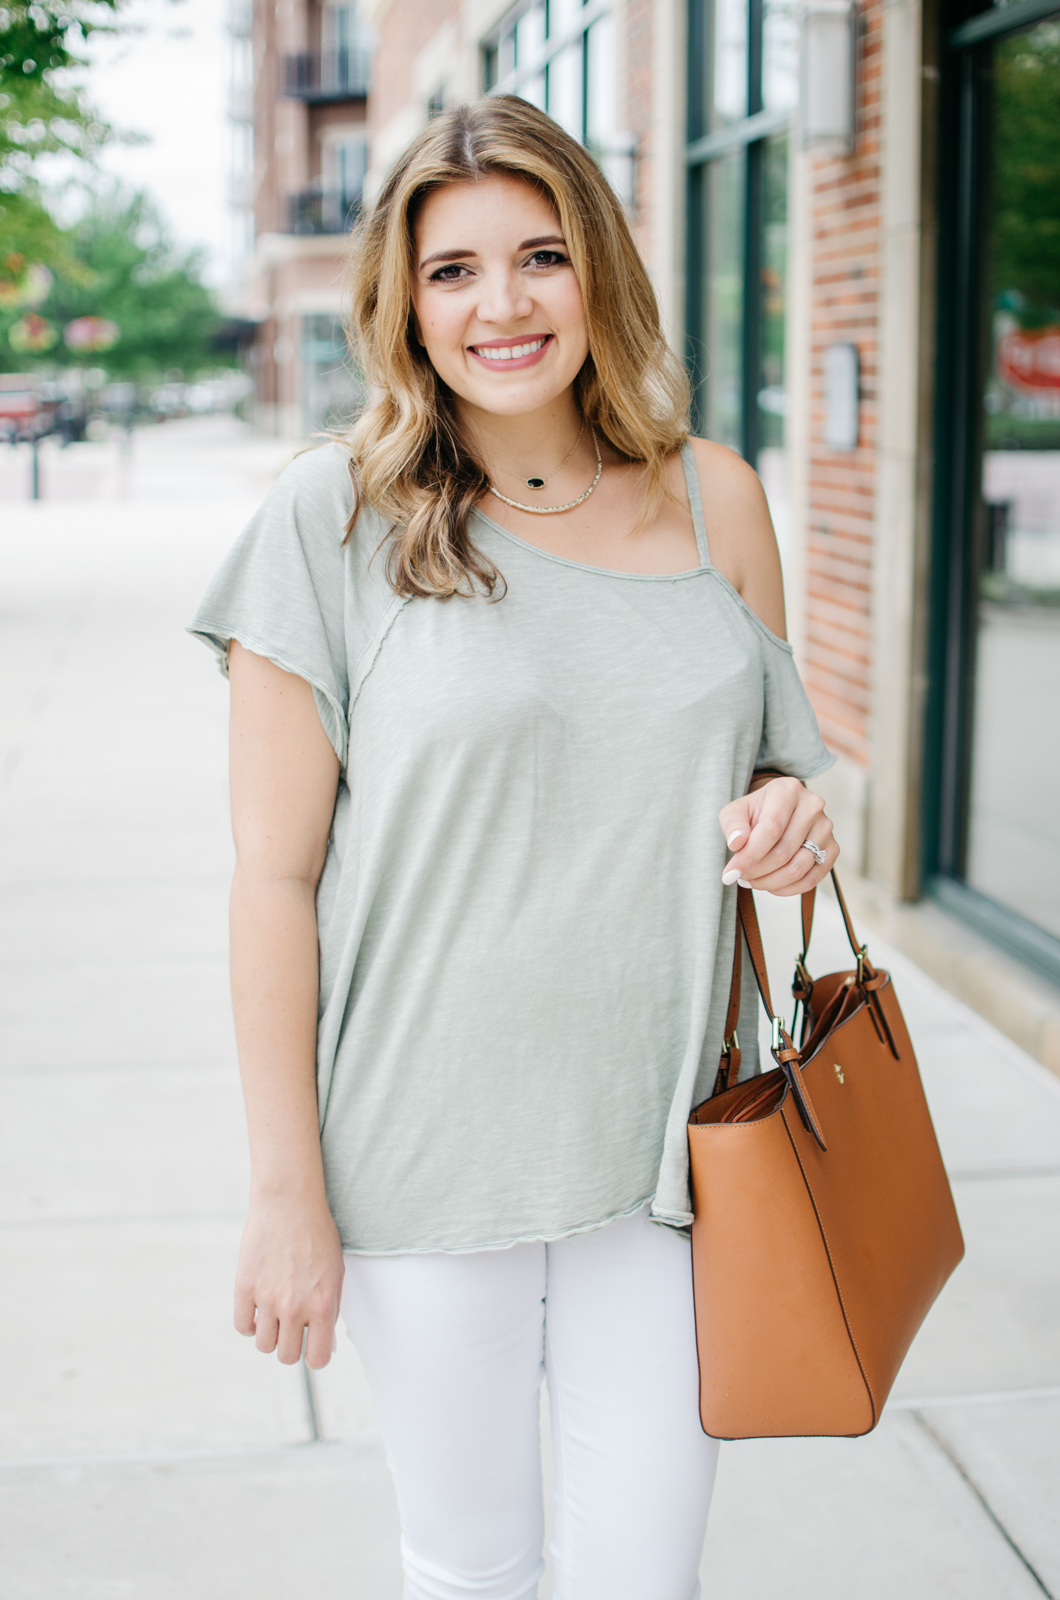 white jeans and a tee summer outfit | For more cute summer outfit ideas, head to bylaurenm.com!